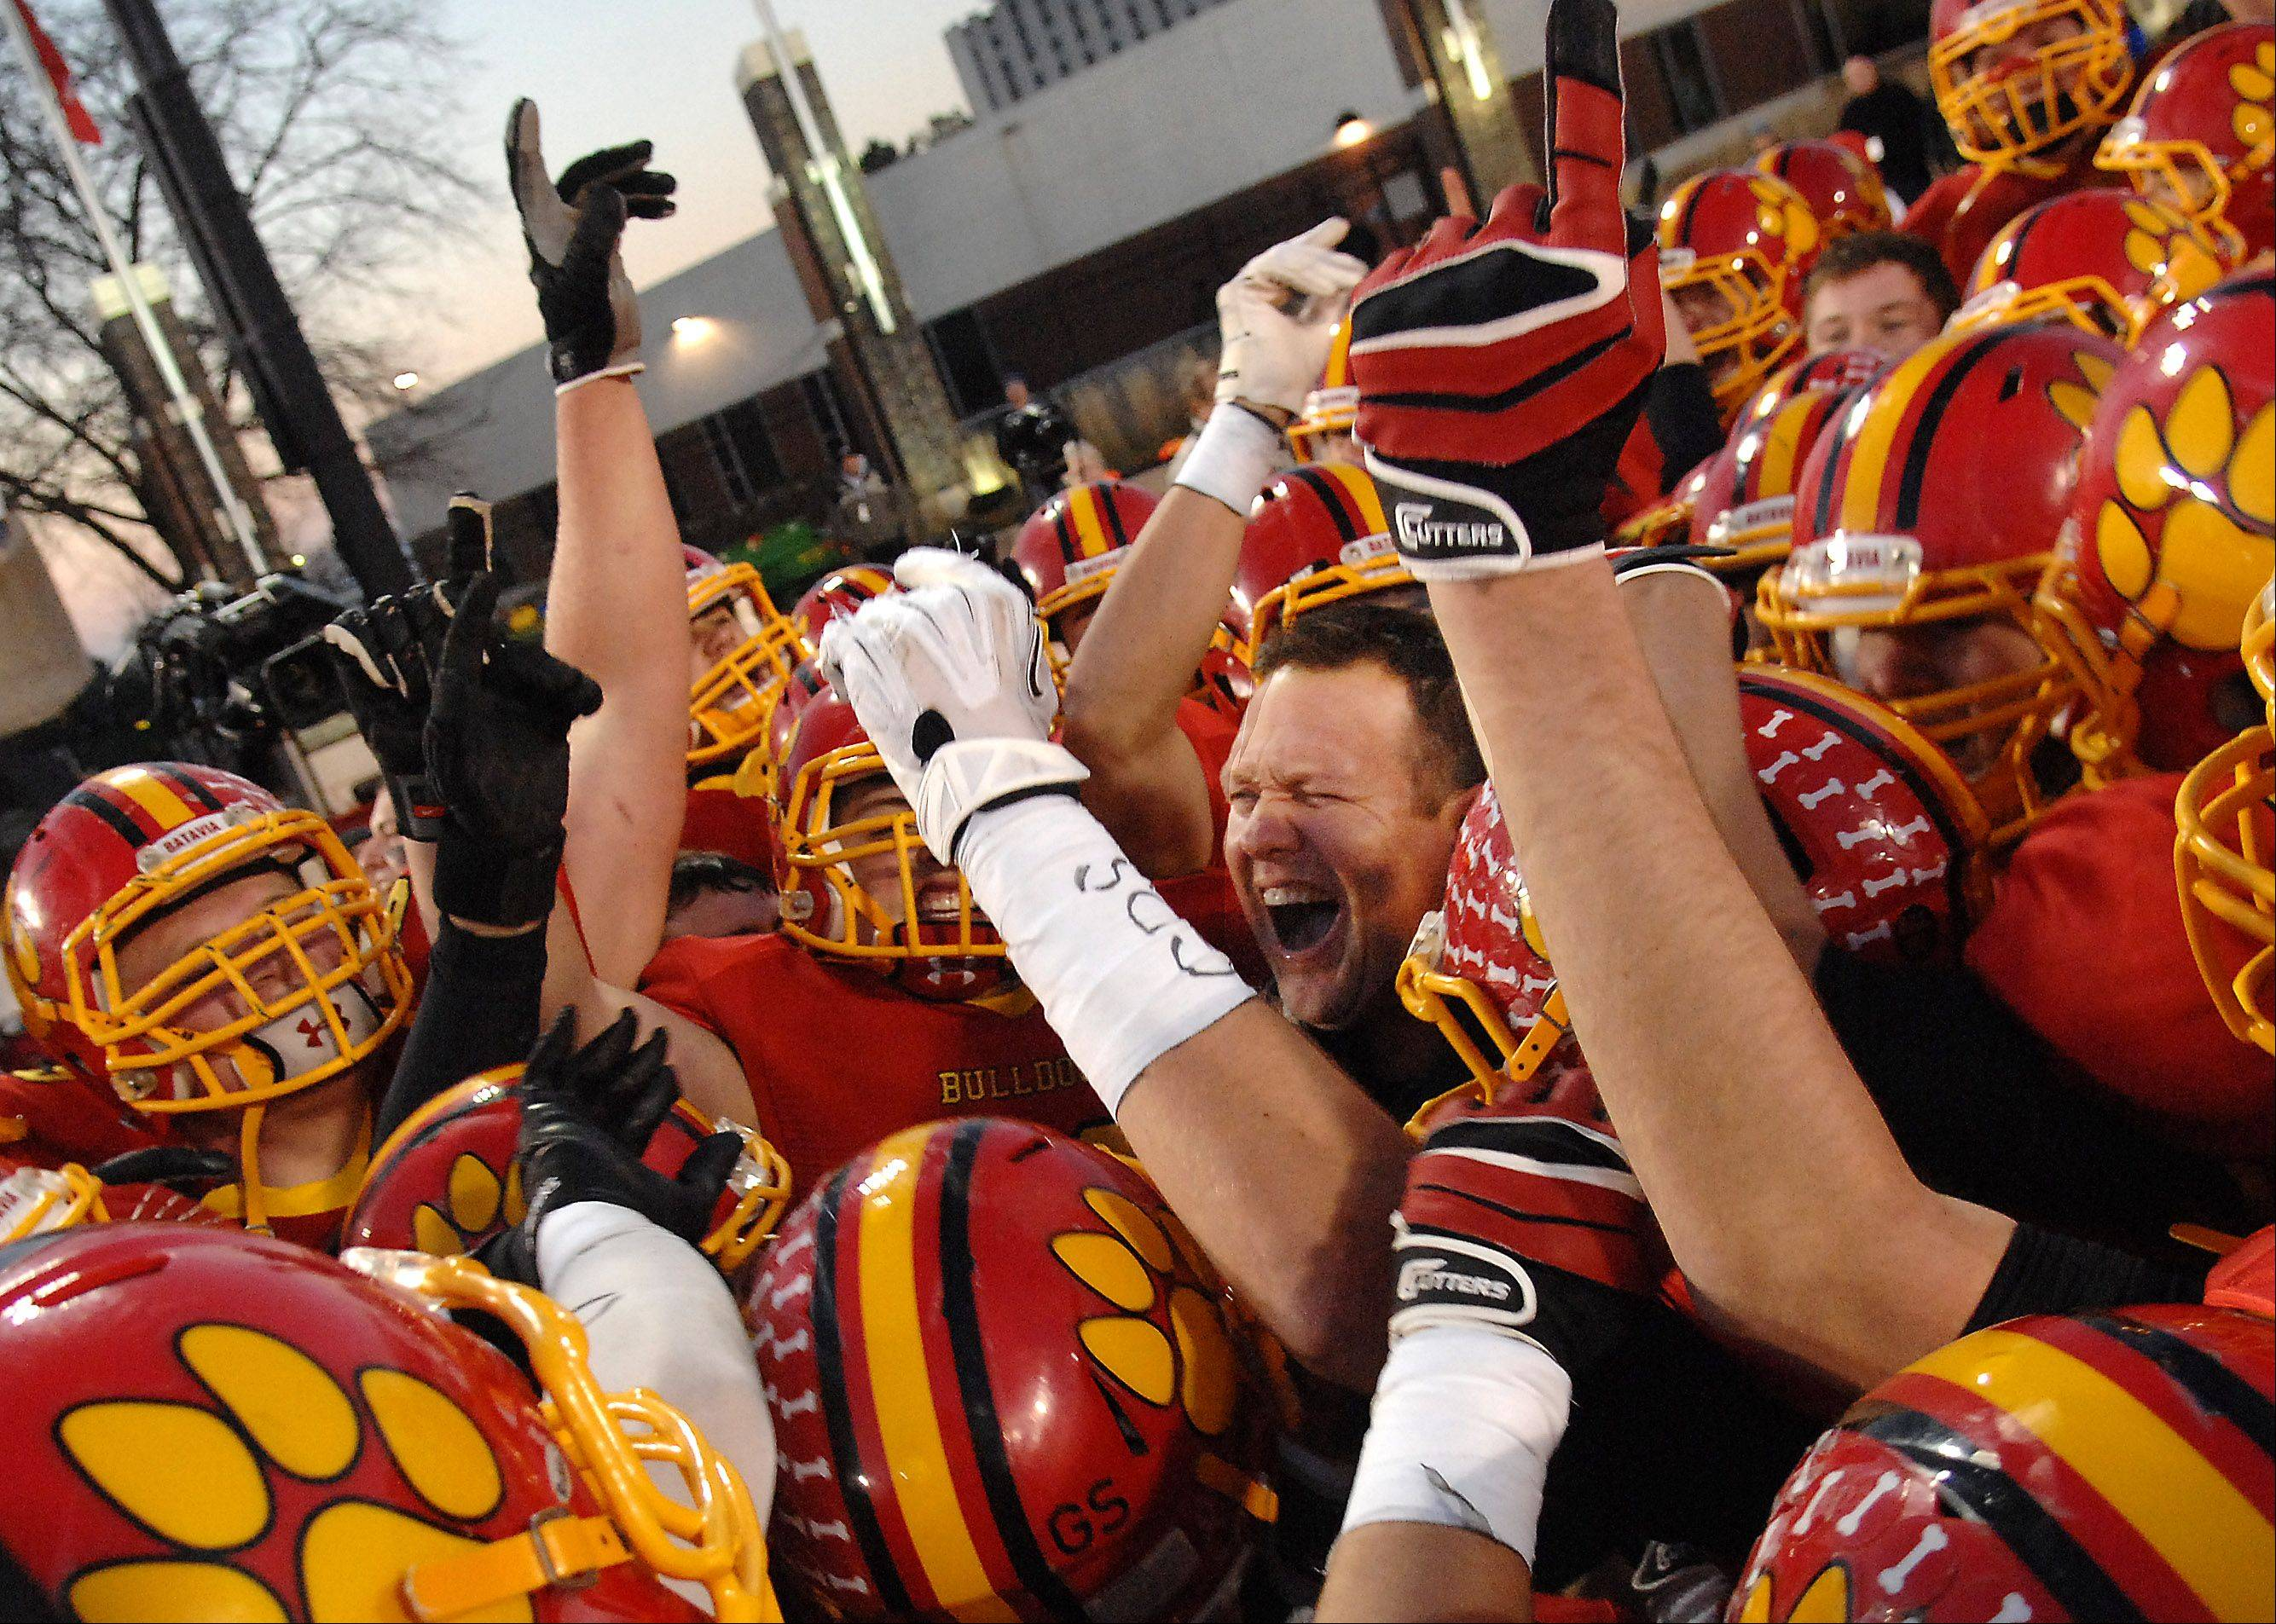 Batavia's head coach Dennis Piron is in the middle of the celebration after Saturday's 6A championship victory in DeKalb.